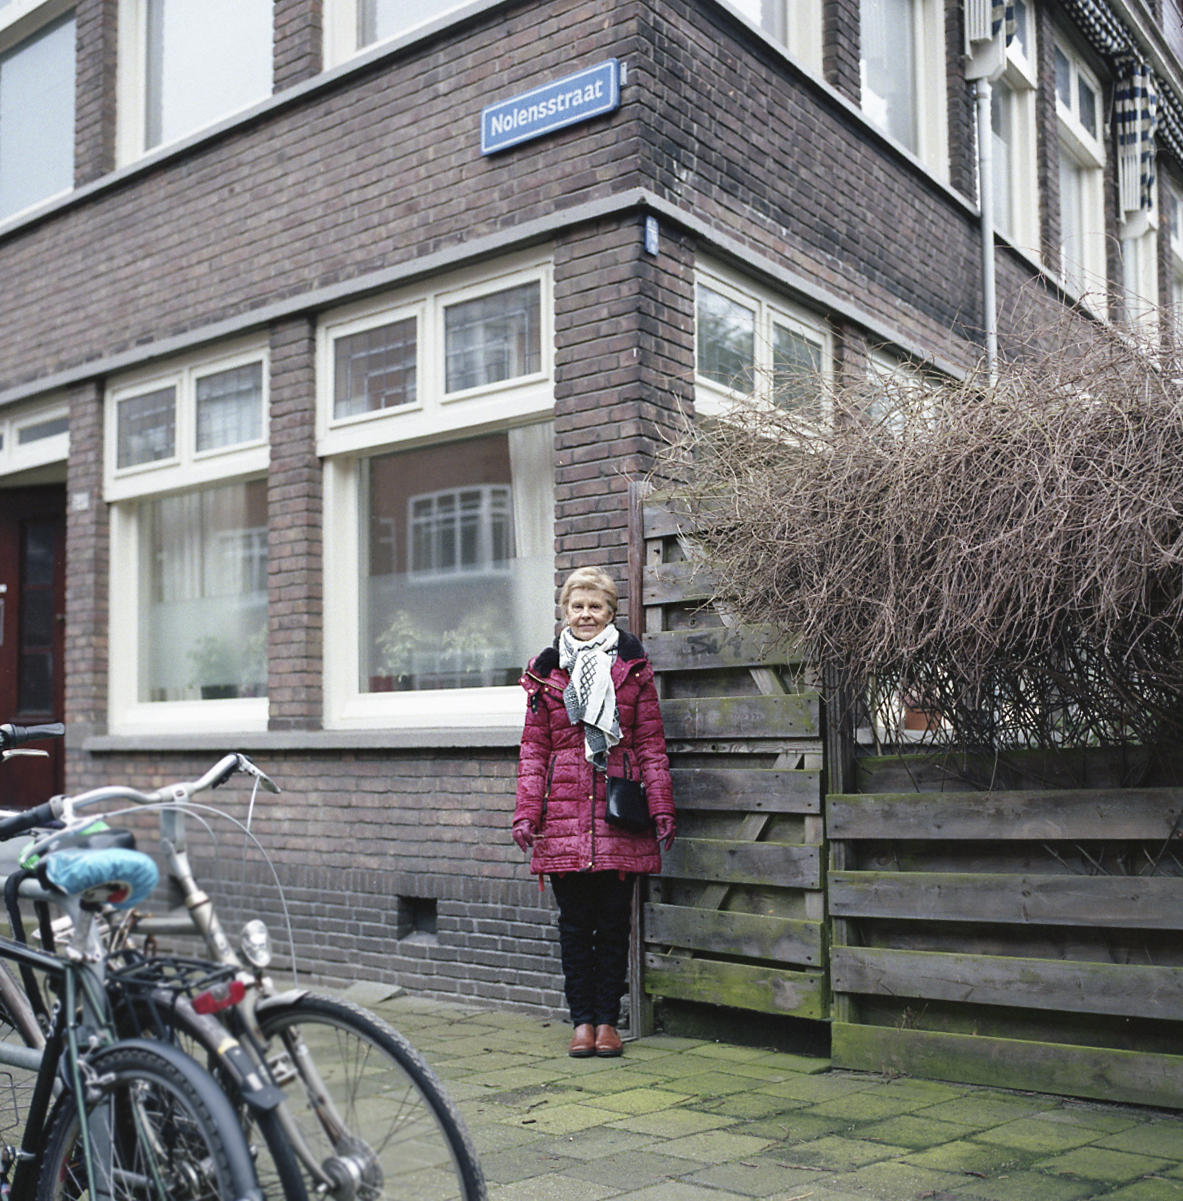 """Mom - """"I used to live in the Nolensstraat.""""   My mom mentioned 'Nolensstraat' several times. Almost everytime she visited me in Rotterdam. I remembering her telling the story of living in this street and me finding it. I used to bike through this street almost everyday for 2 years. Seeing the street sign and thinking to myself """"I should tell her I found the street, so we can go there"""" but it would slip my mind a few minutes later. So I never actually told her until we took a walk around the block. I finally remembered! It was perfect because I had my camera with me so I could take a picture of her and the street sign. Now all I have to do is show her the picture."""